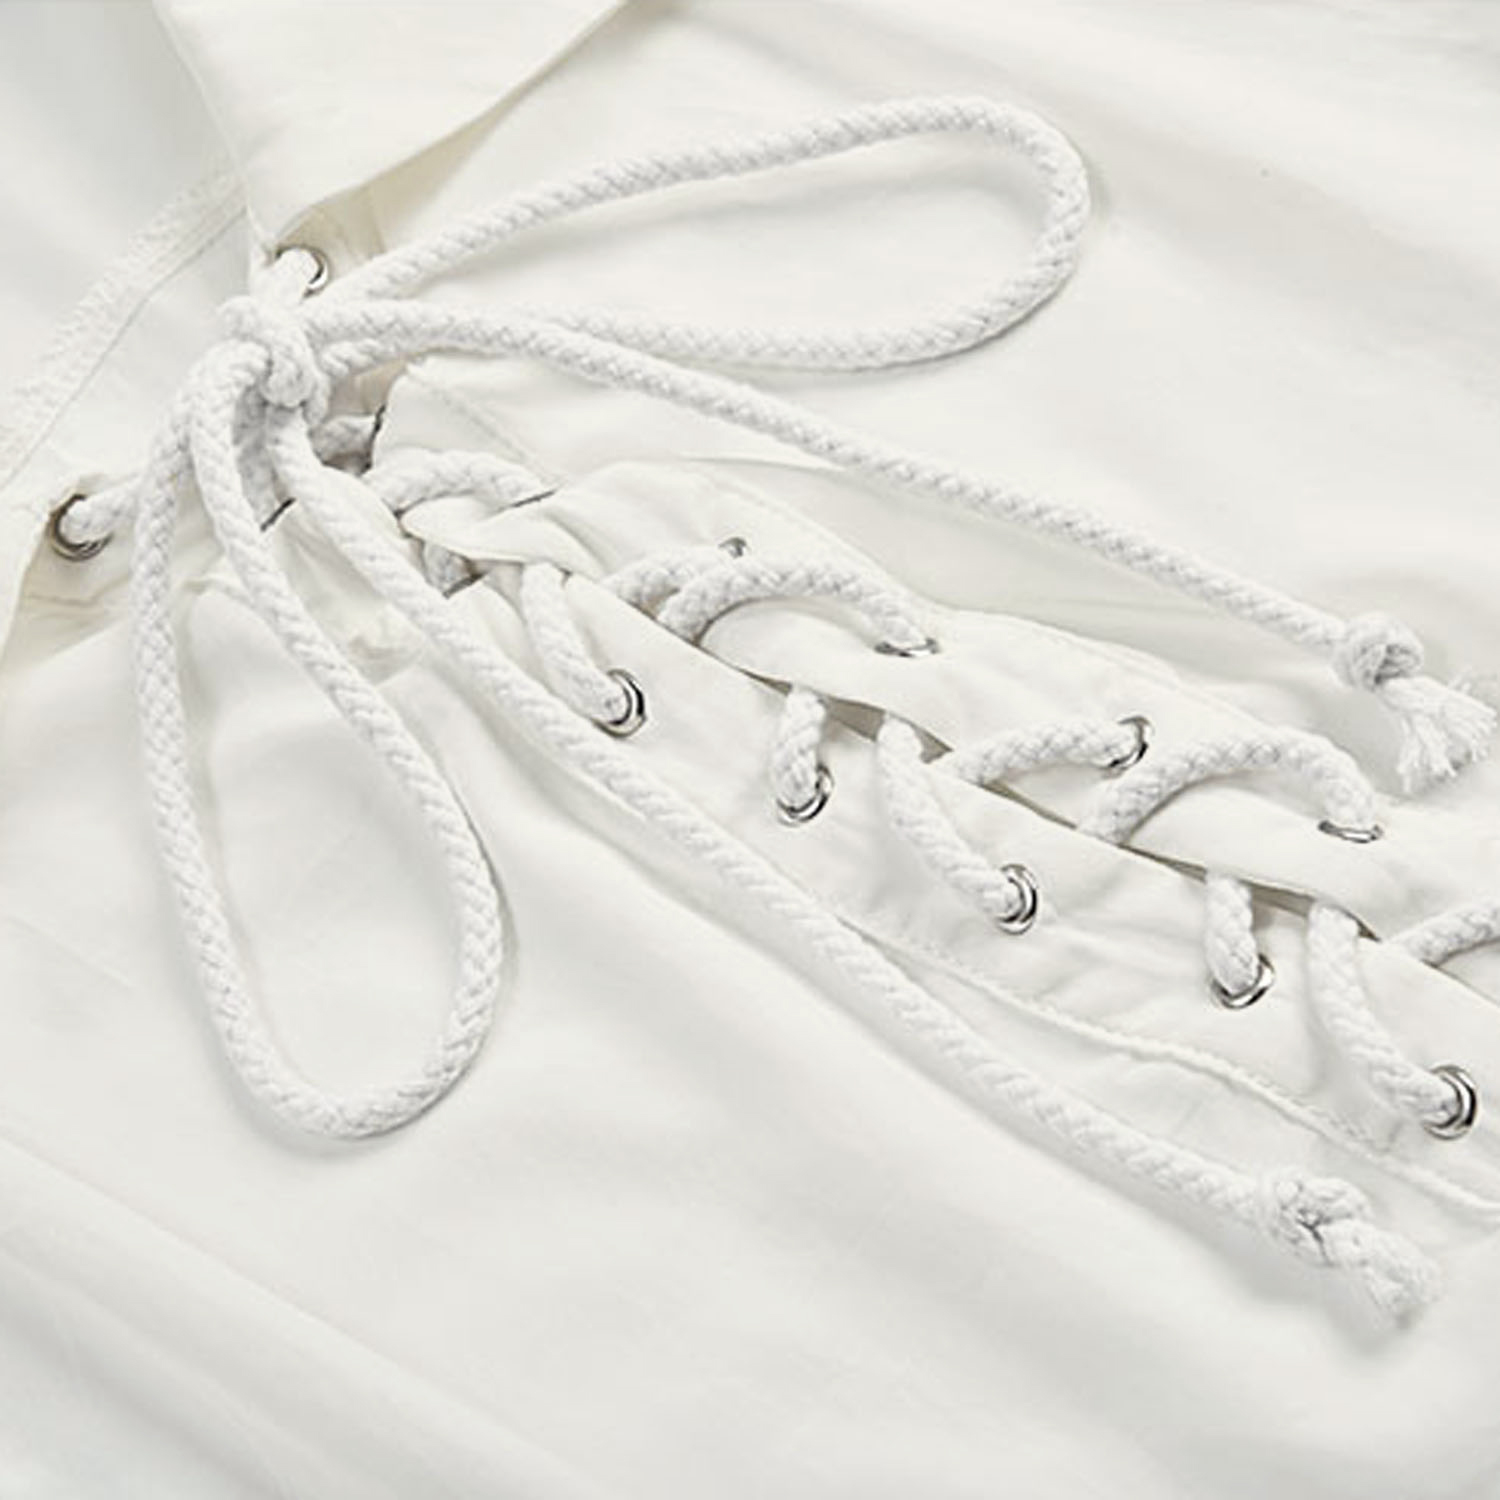 Sexy White Lapel Lace Up Shirt, Lace Up Blouse, Long Sleeve Ruffle Cuff Blouse Tops,Men